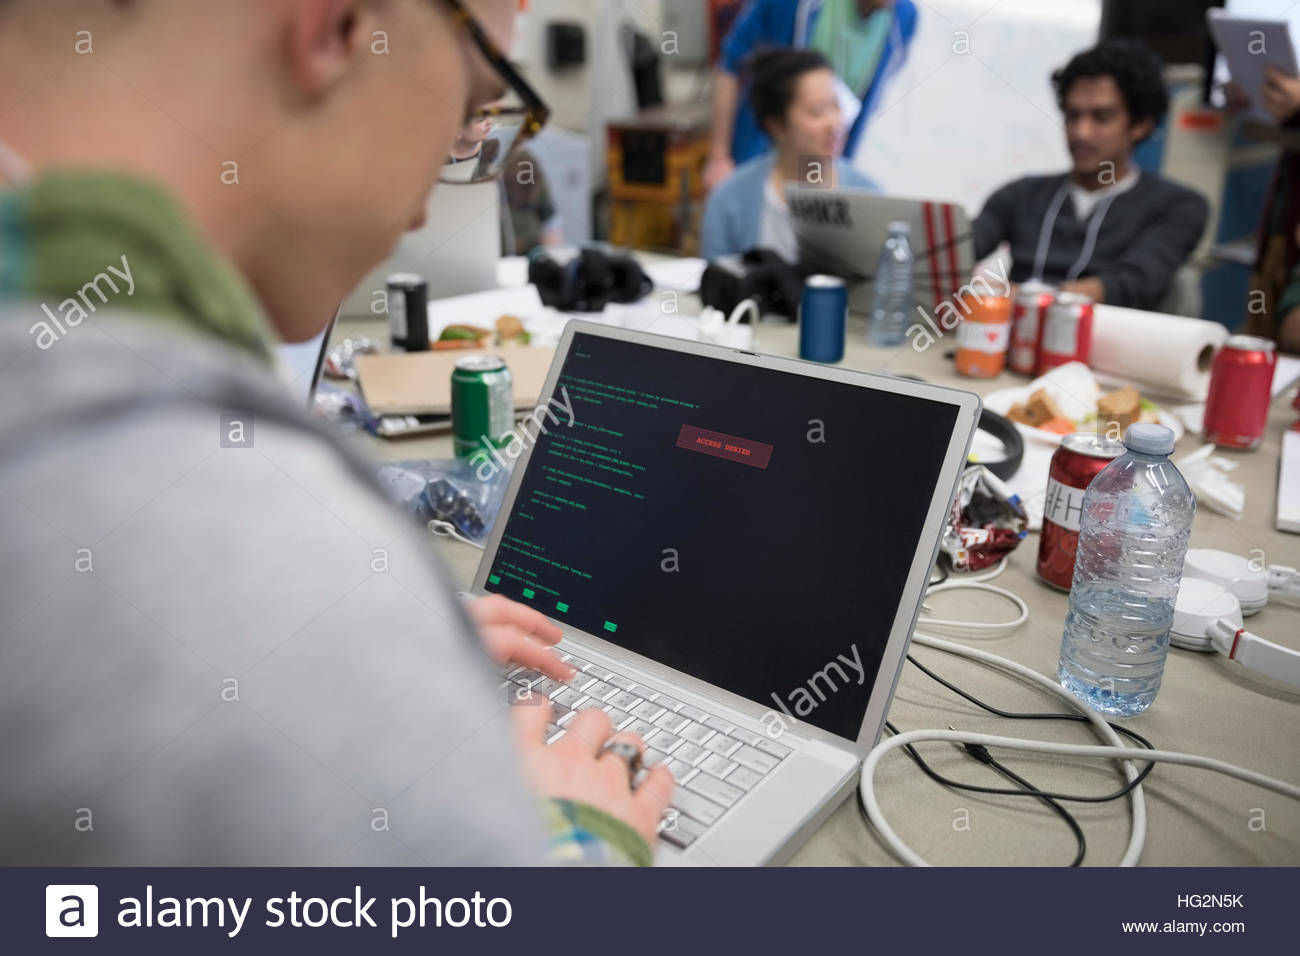 Hacker coding working hackathon at laptop - Stock Image